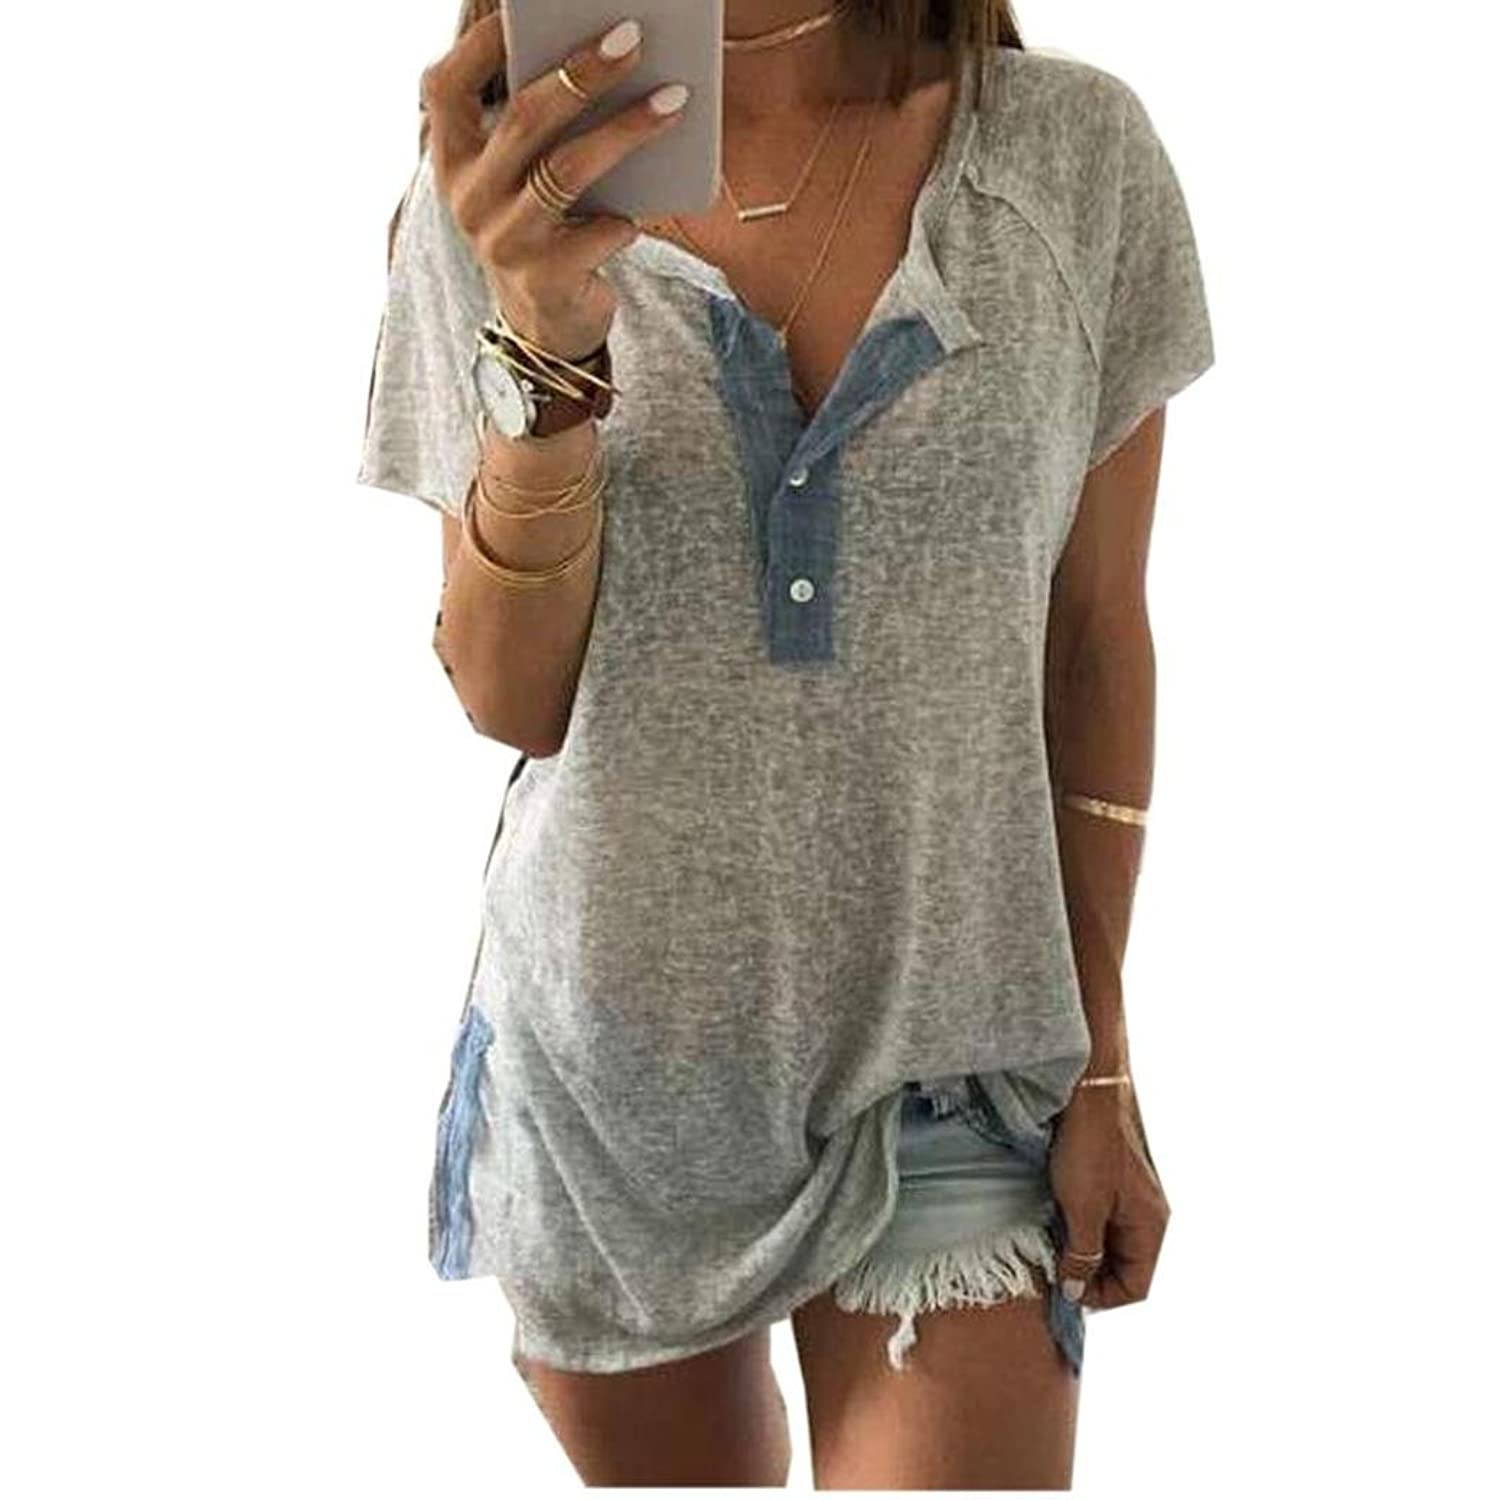 458e77e8fc5 Material:Cotton blend. womens tops and blouses plus size clearance summer t  shirts dress knee length for summer spring fall winter autumn prime with  pockets ...